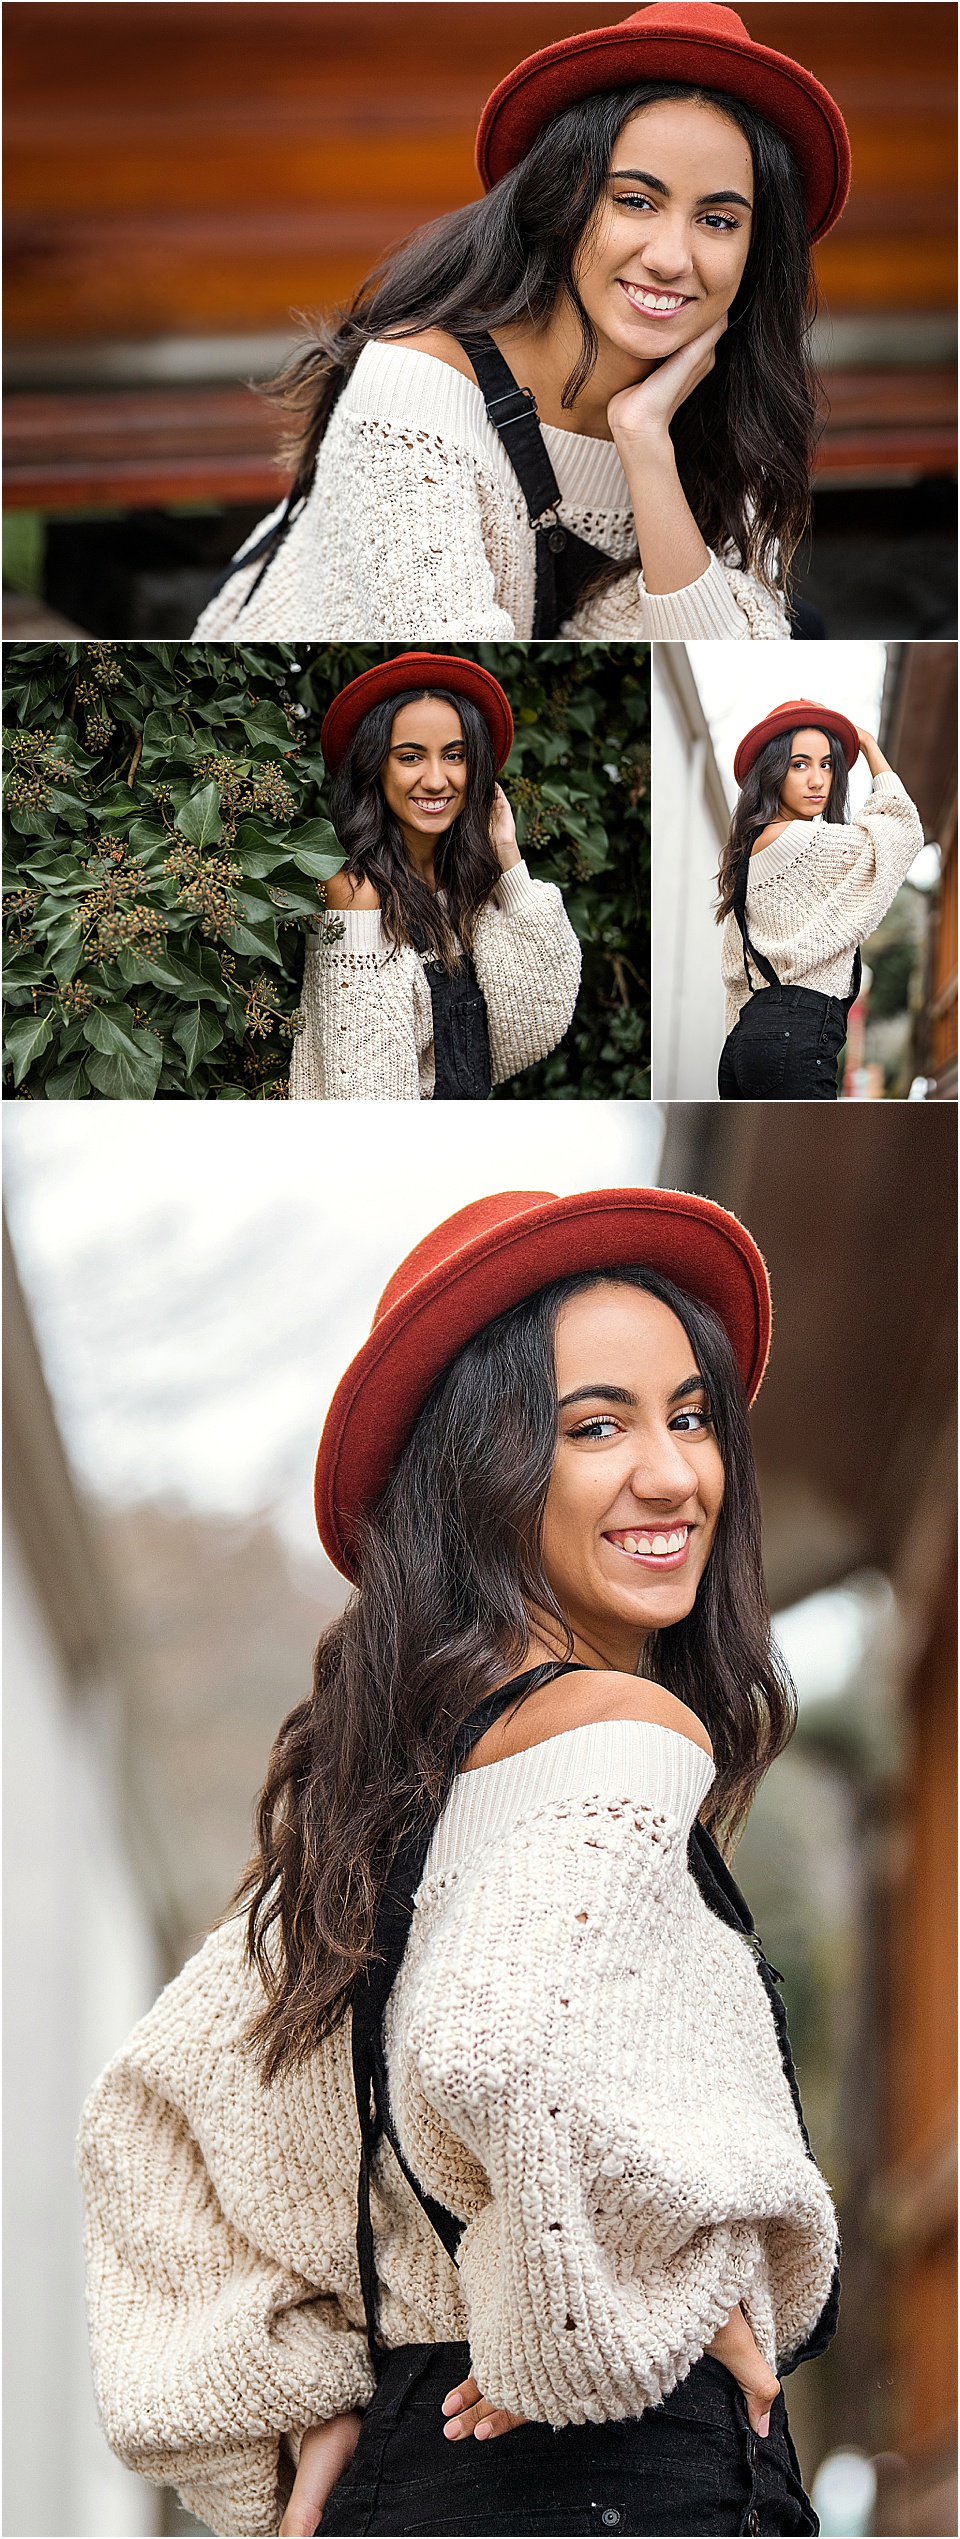 We are loving D's chunky knit sweater paired with her black jumper and orange hat. PC: StudioBportraits.com